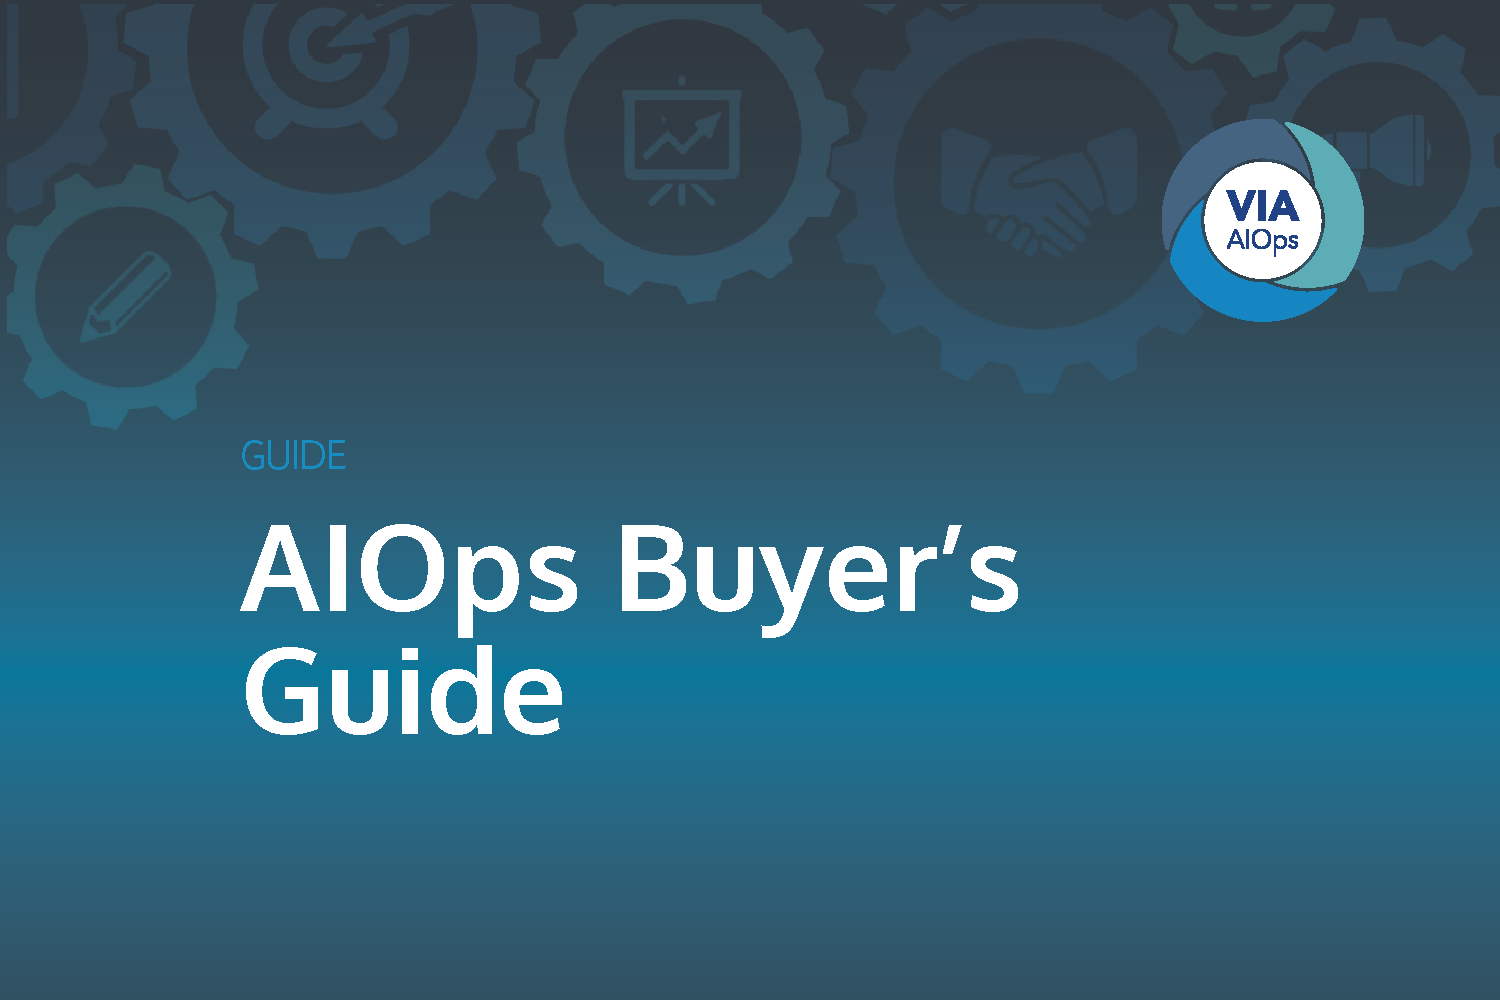 Download the Guide: AIOps Buyer's Guide